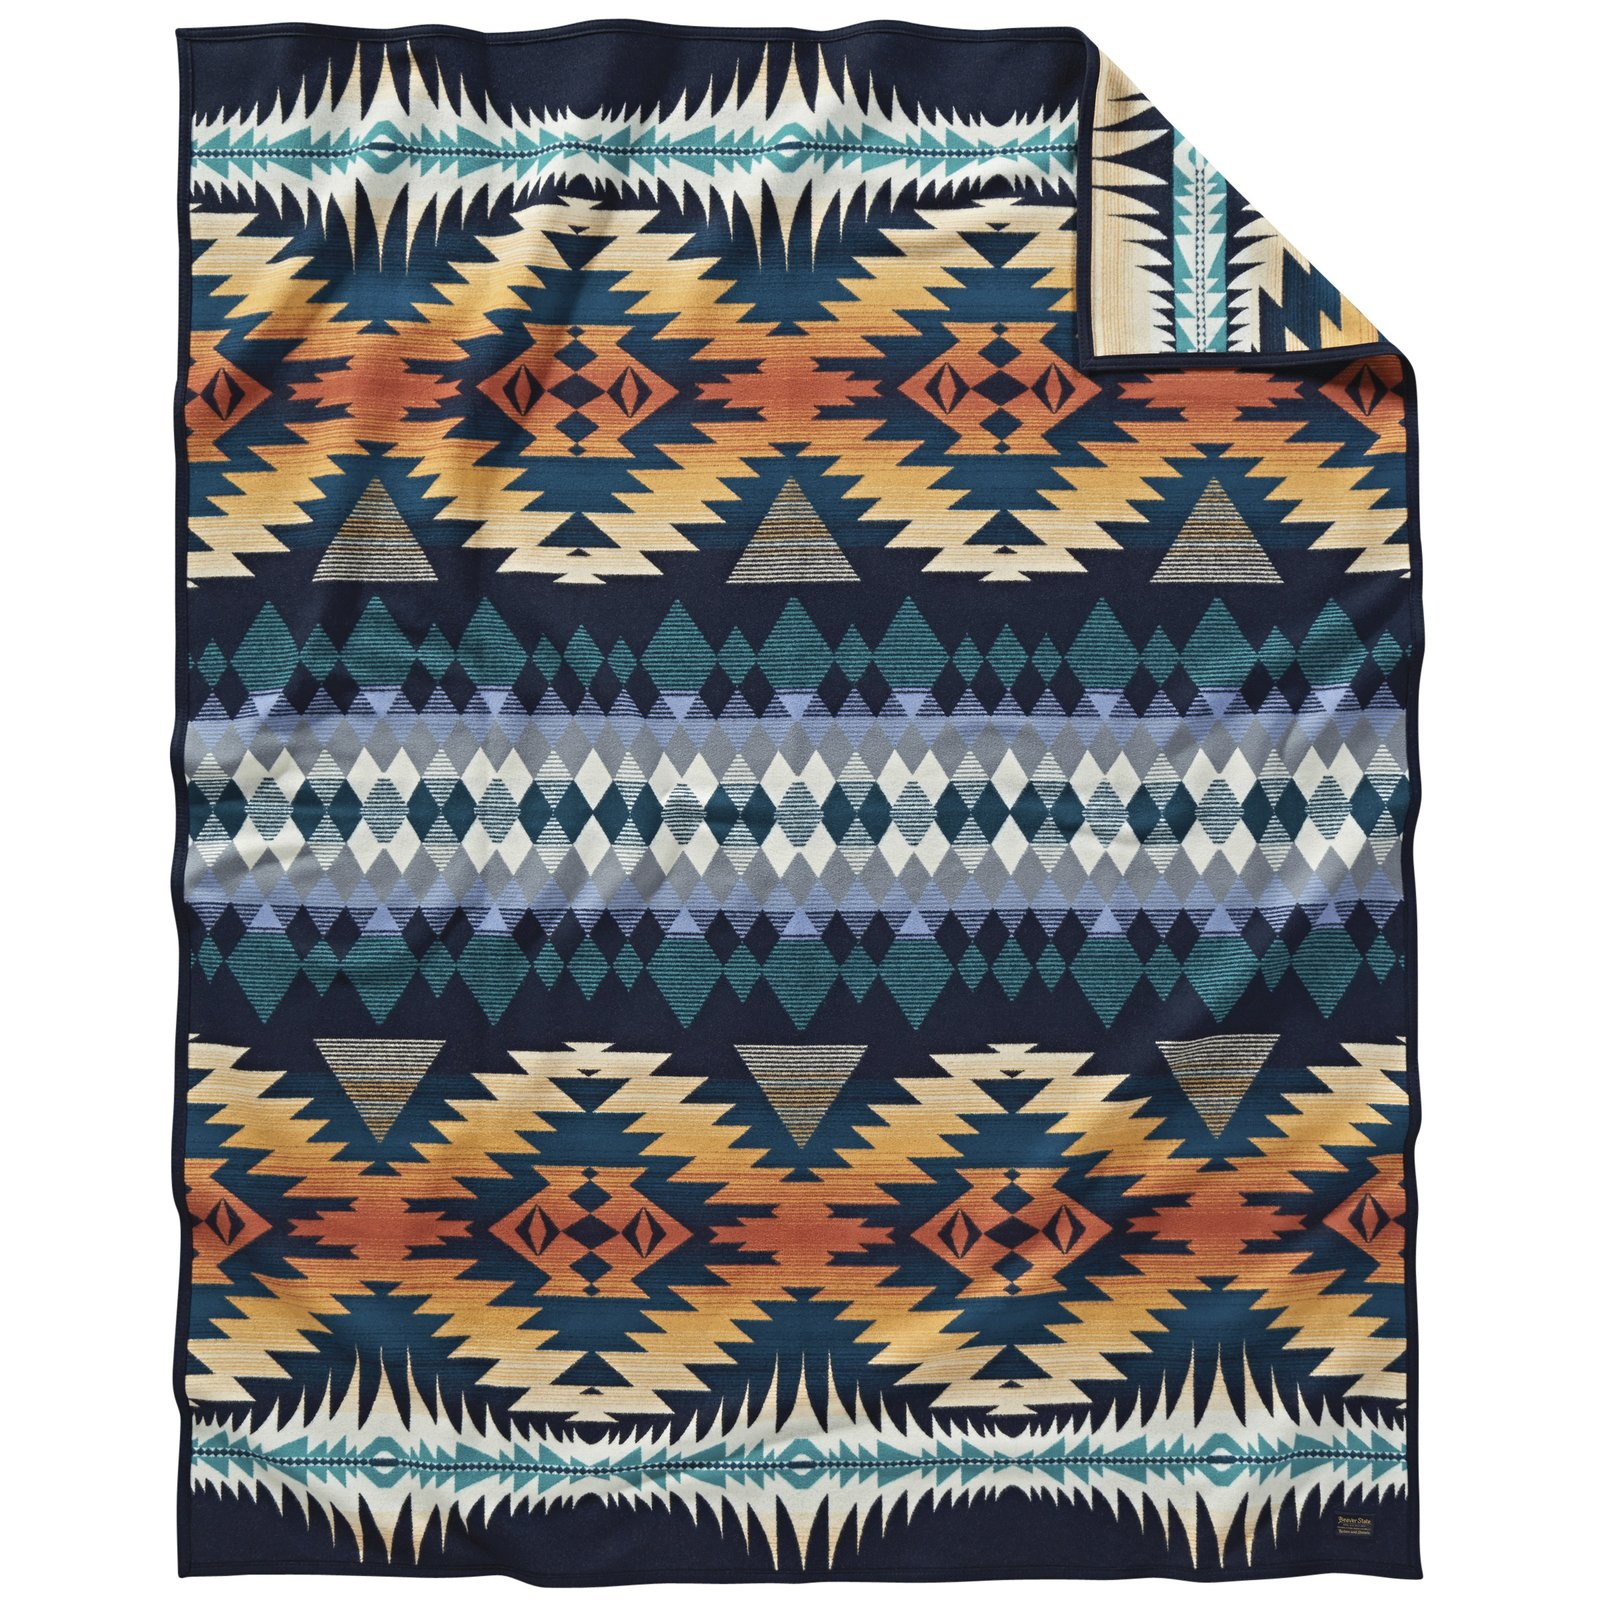 Night Dance Blanket (2017) Pendleton Woolen Mills Woven and finished using jacquard looms in Pendleton, Oregon, the Night Dance blanket is manufactured by adhering to the same trusted practices the company has followed since its founding in 1863.